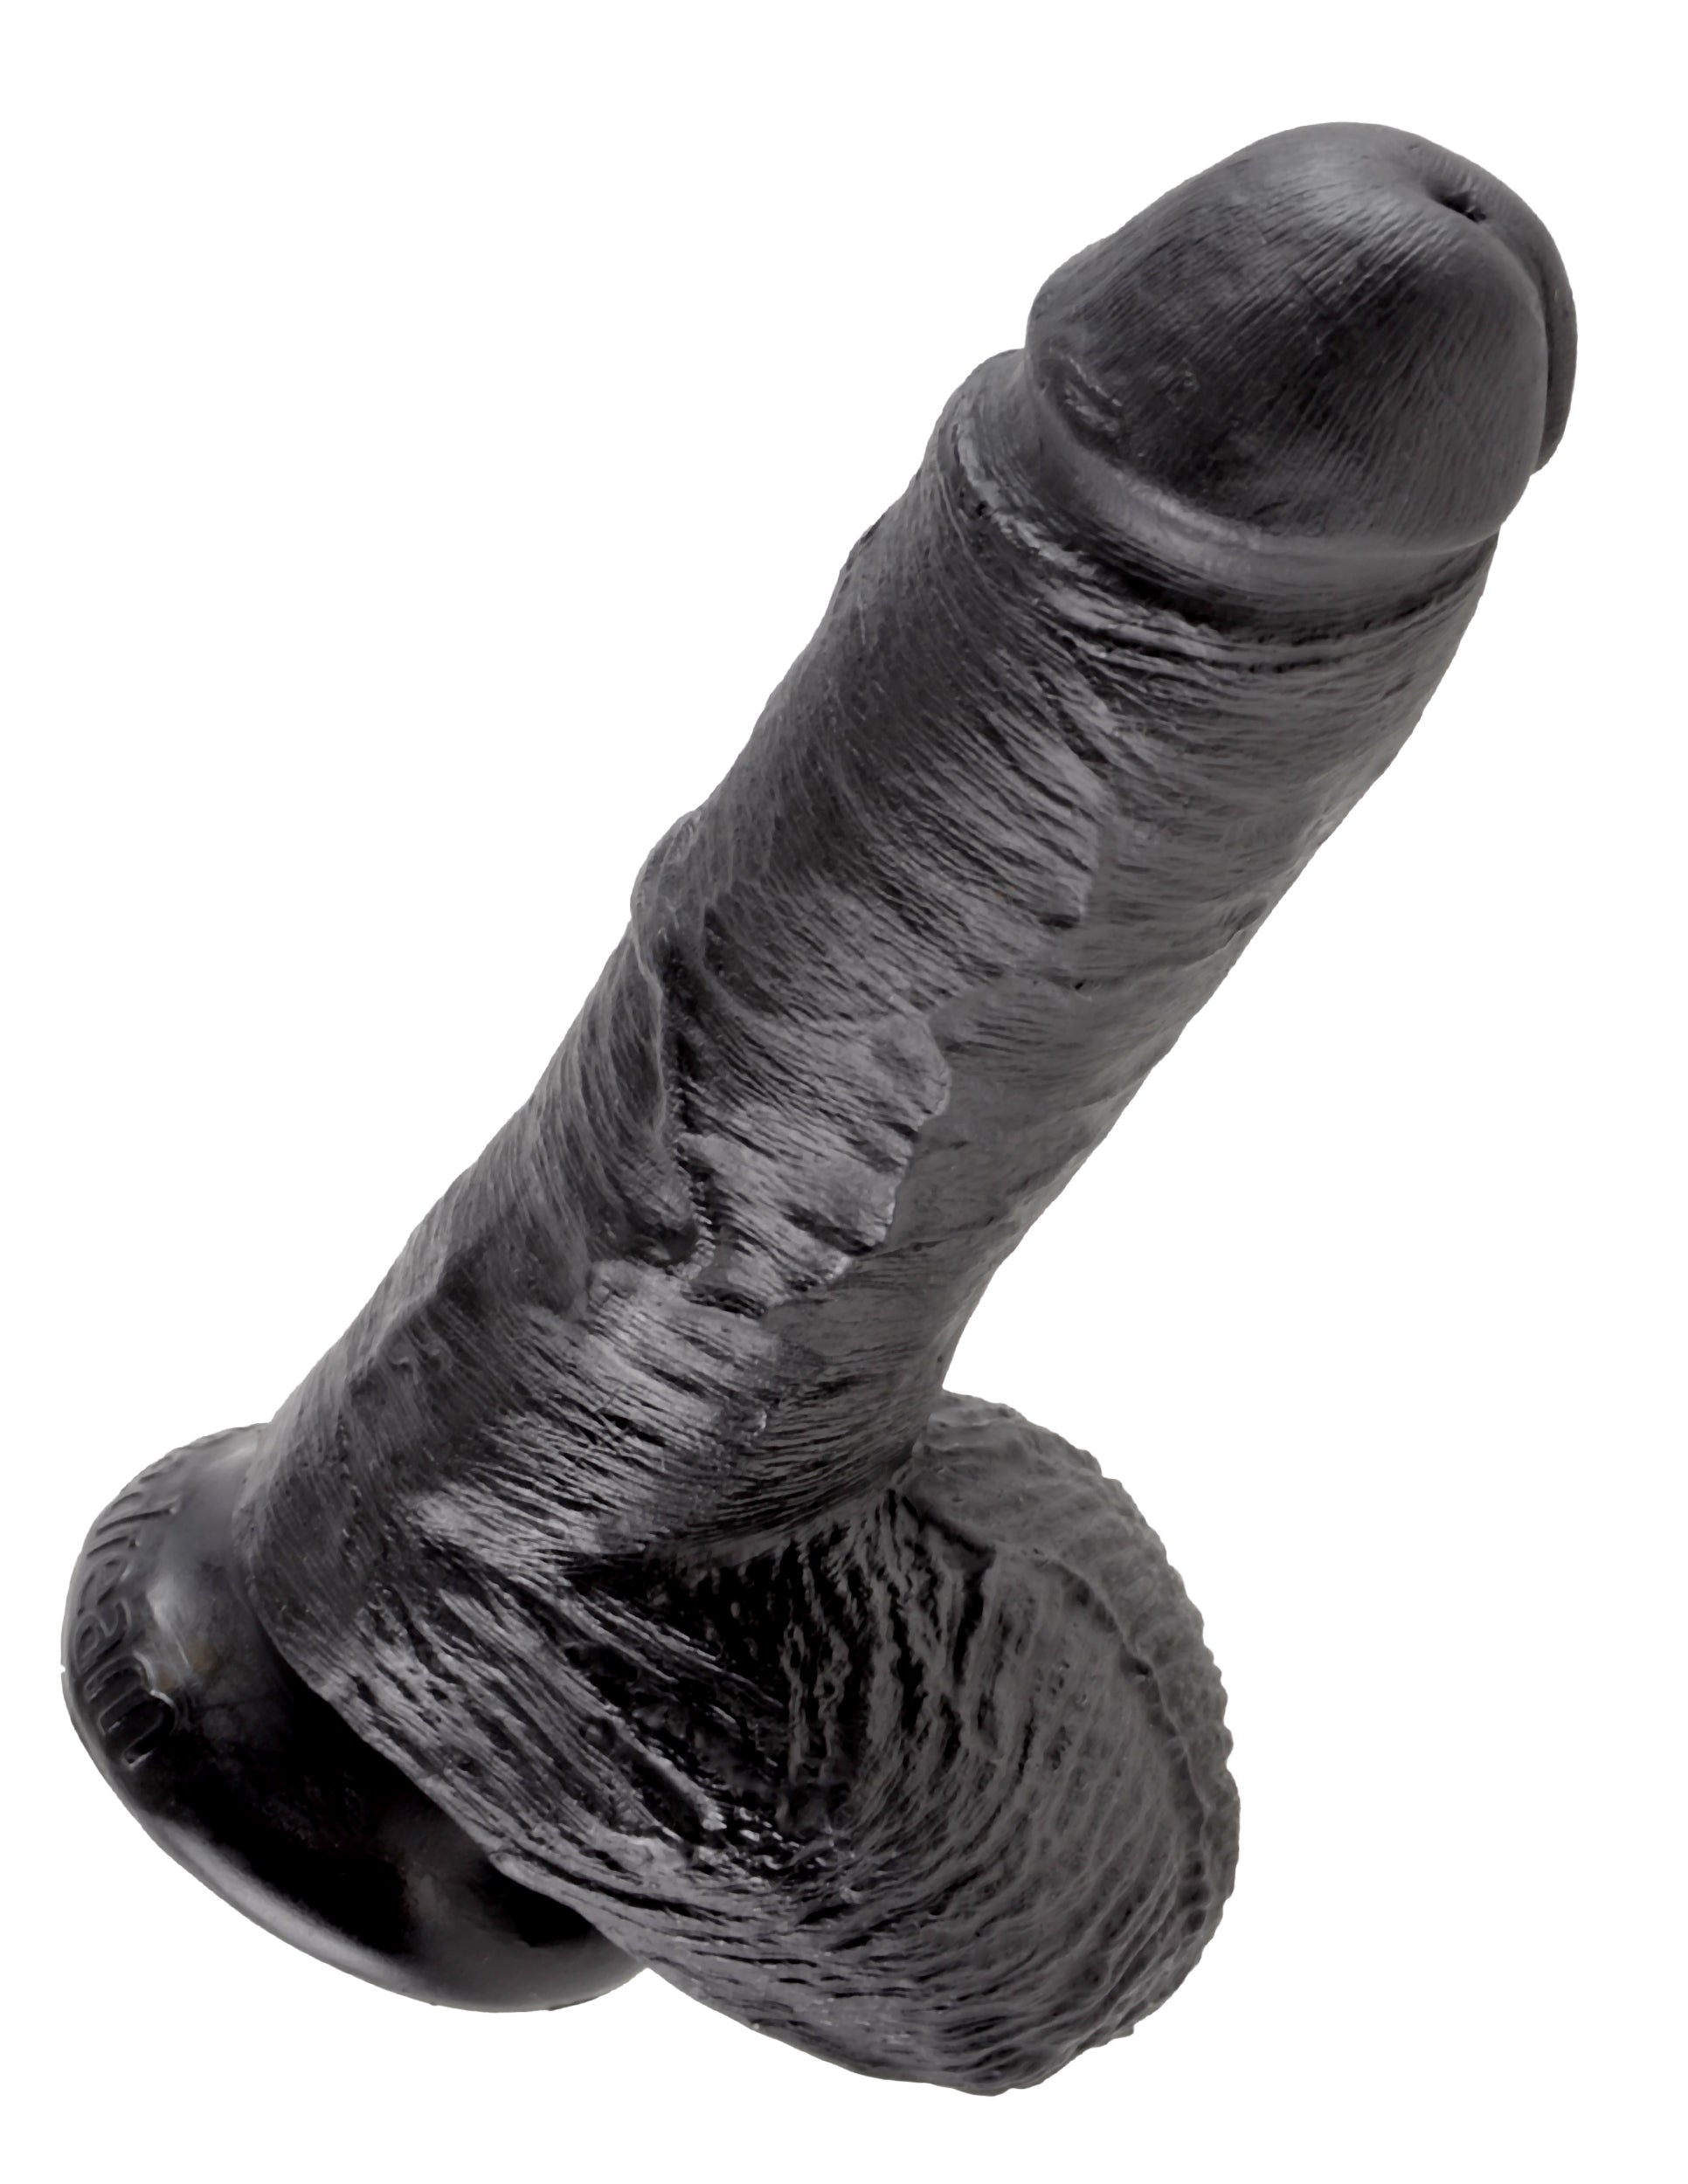 "King Cock 8"" Suction Cup Dong with Balls"